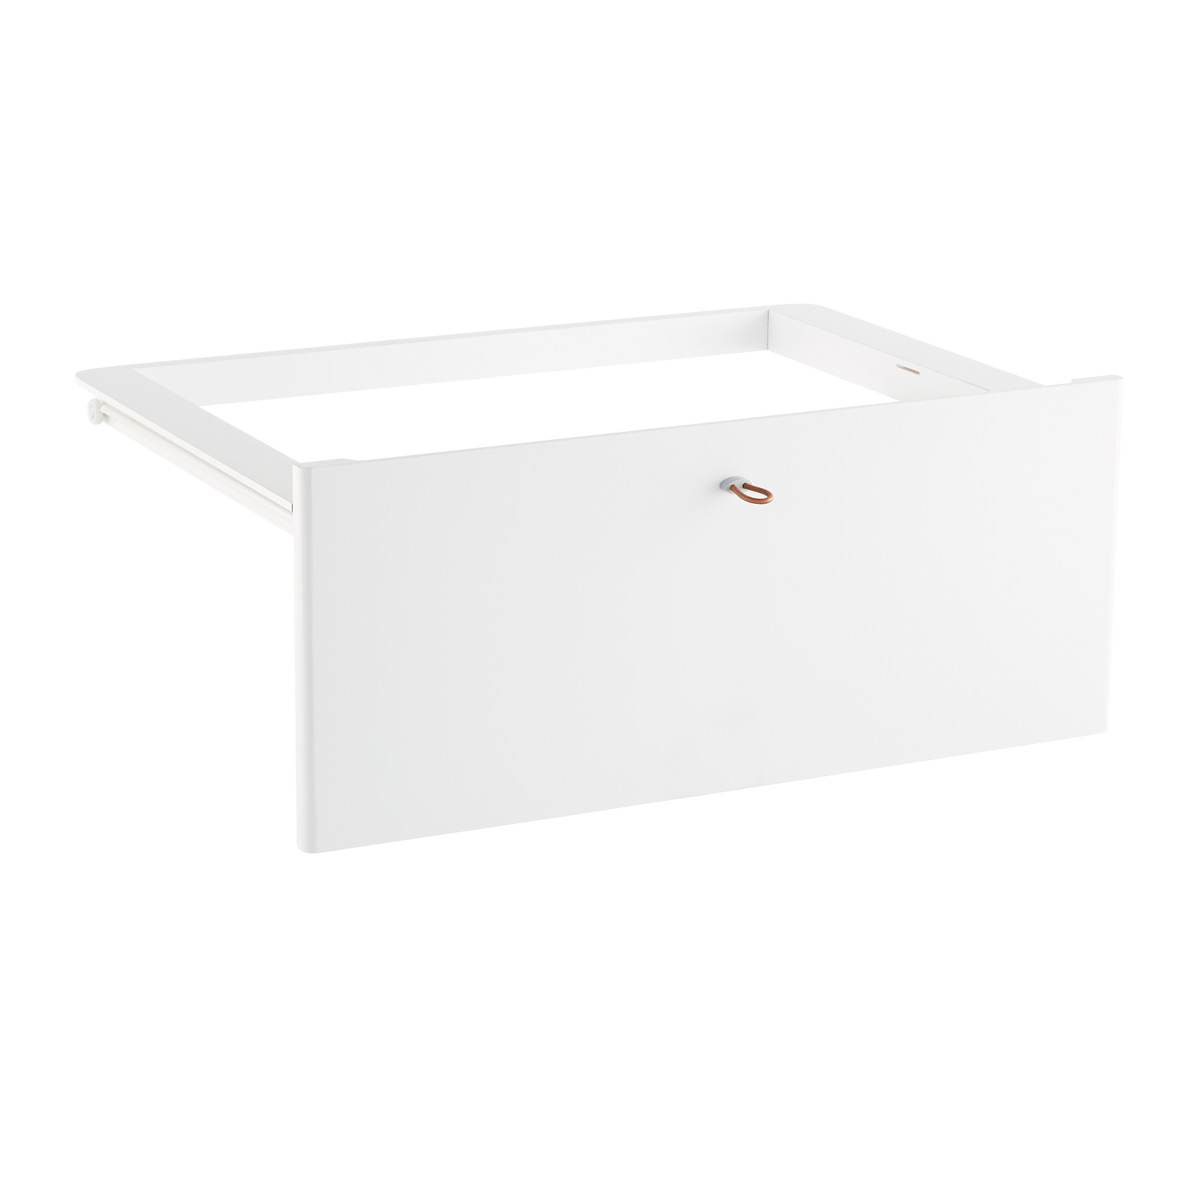 White Elfa Décor Drawer Frames & Fronts